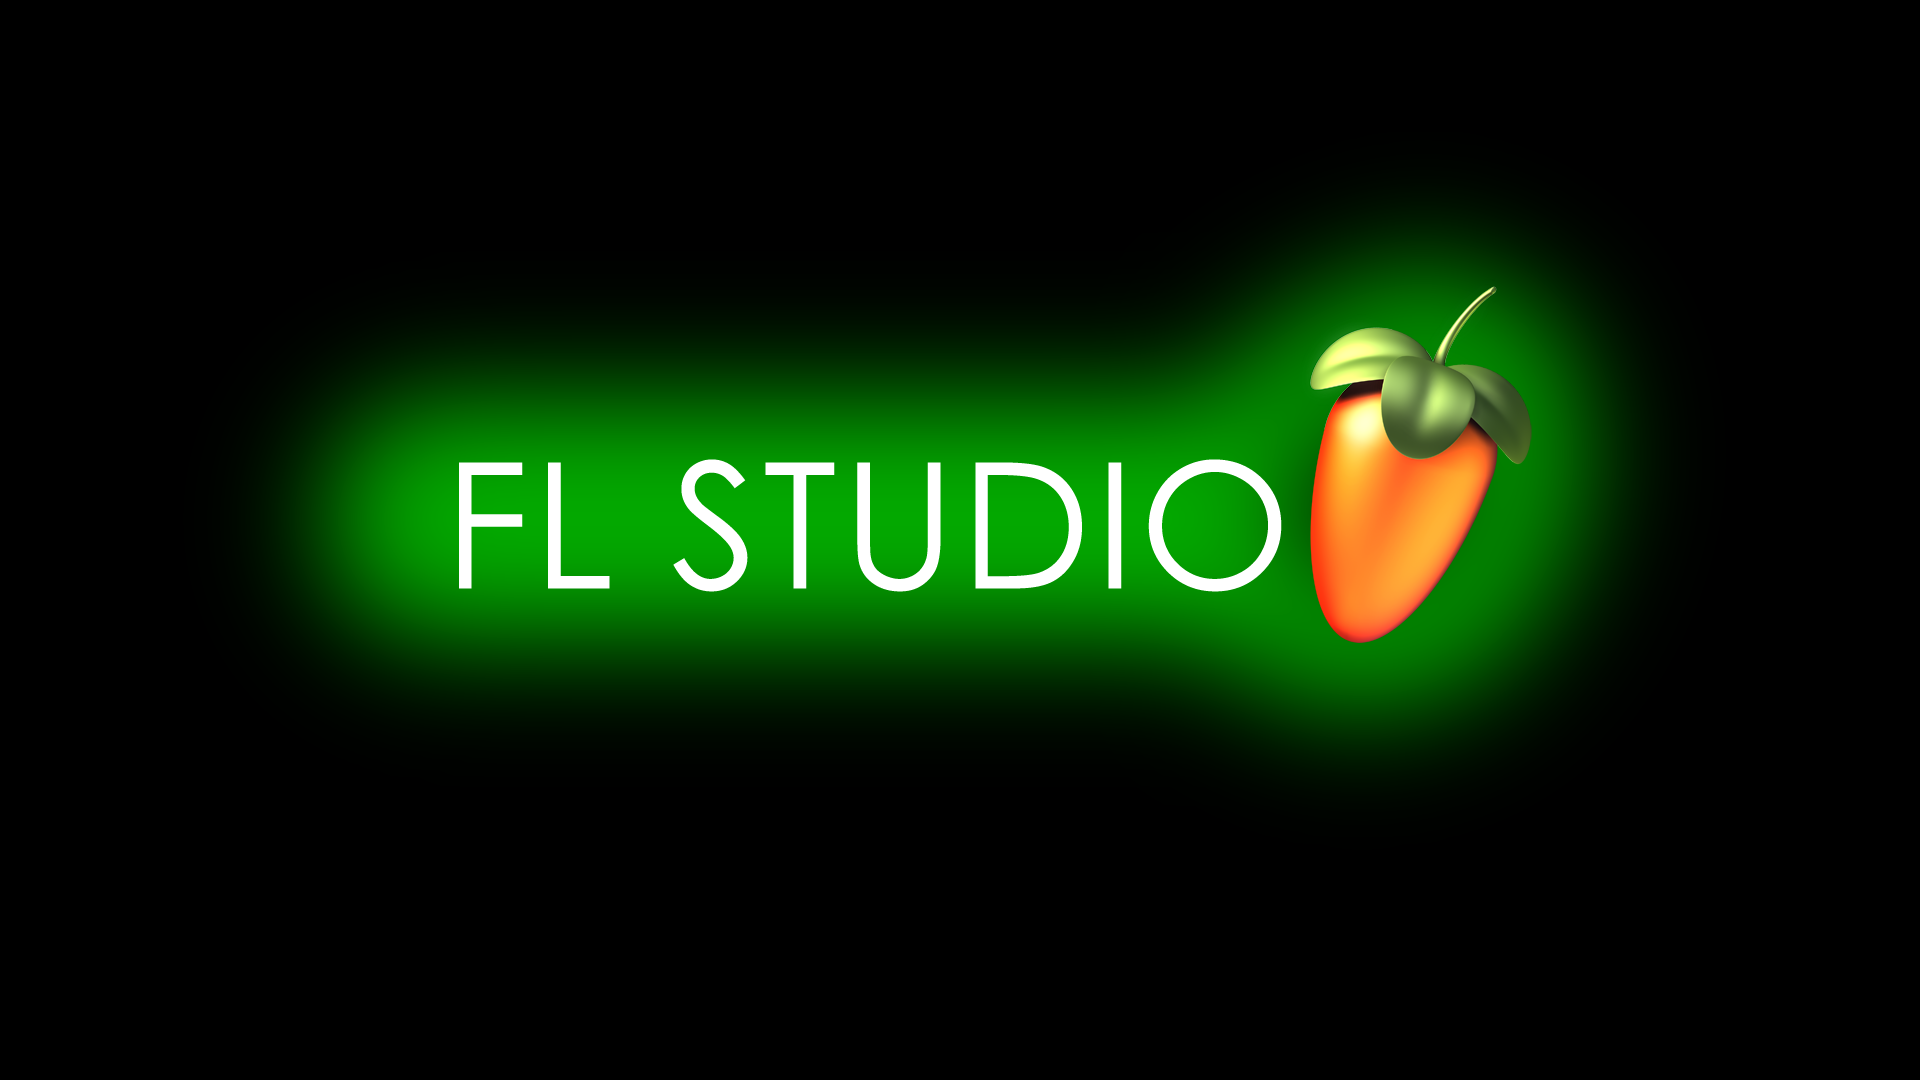 Fl studio mobile 1.0 5 for android download